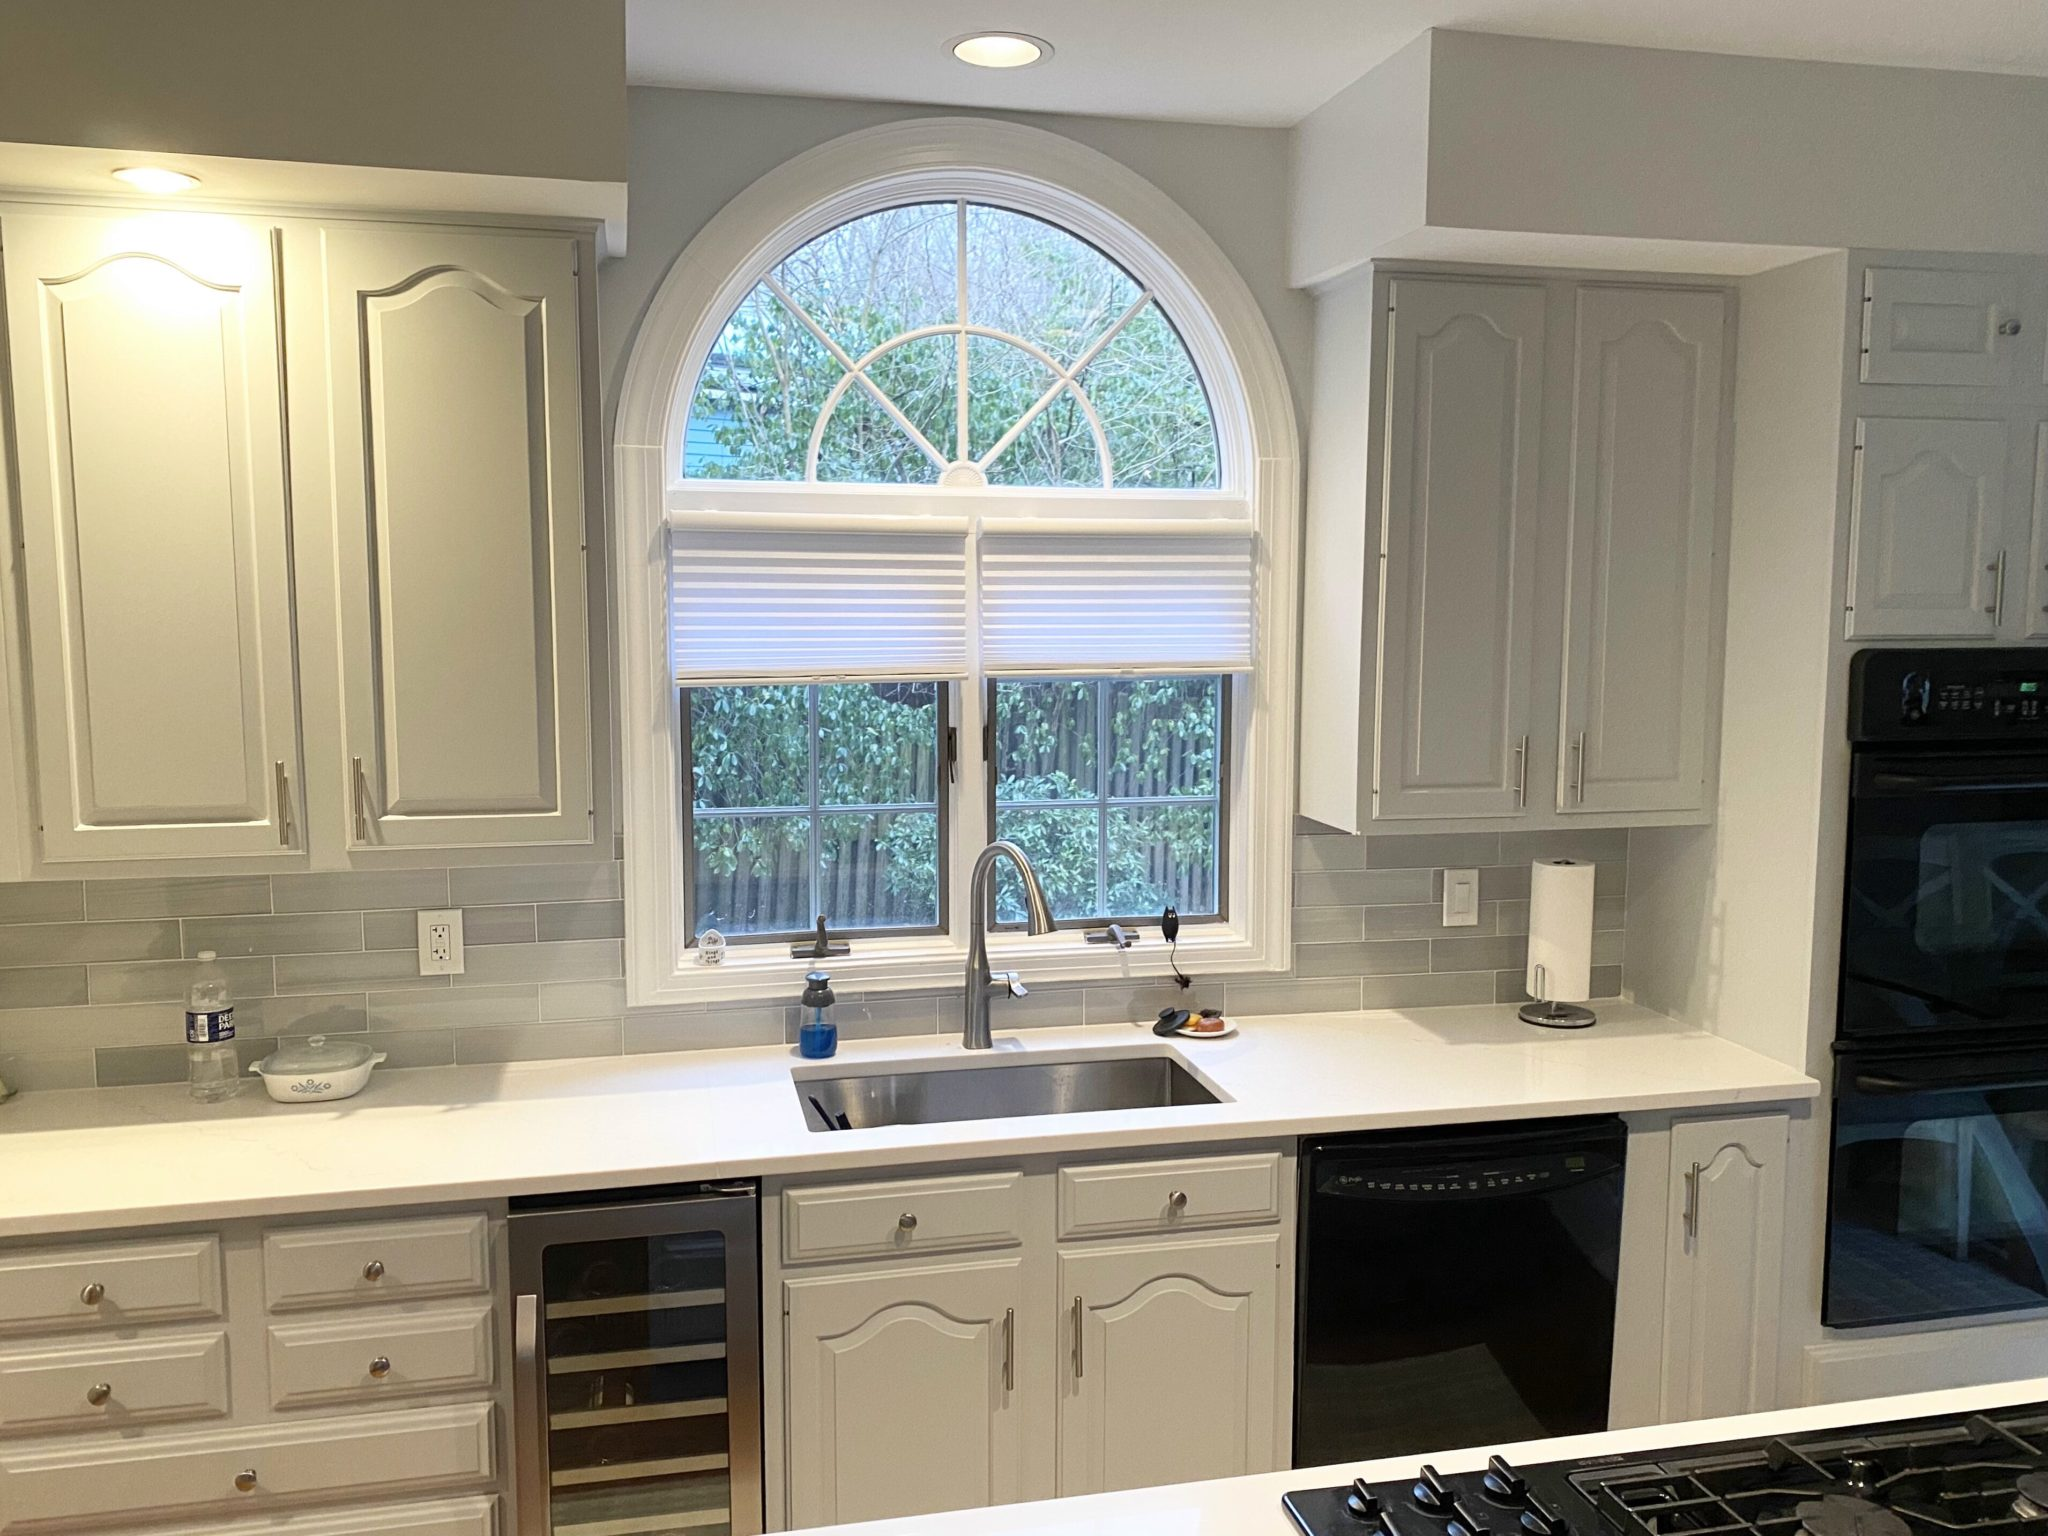 Explore Kitchens Offering Virtual Site Visits